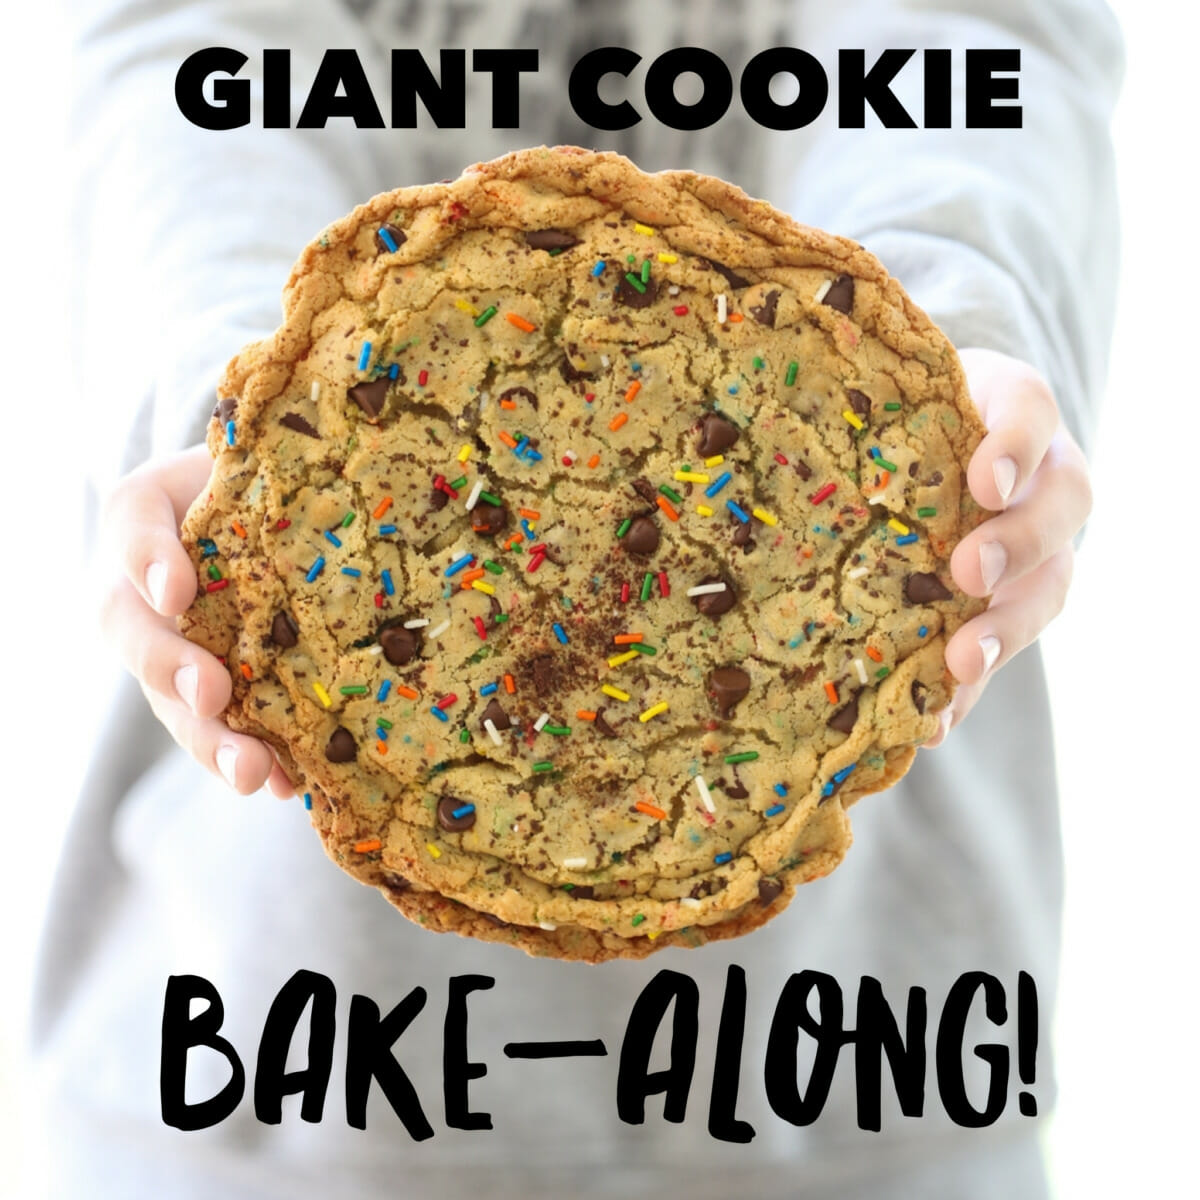 Join the Giant Cookie Bake-Along!